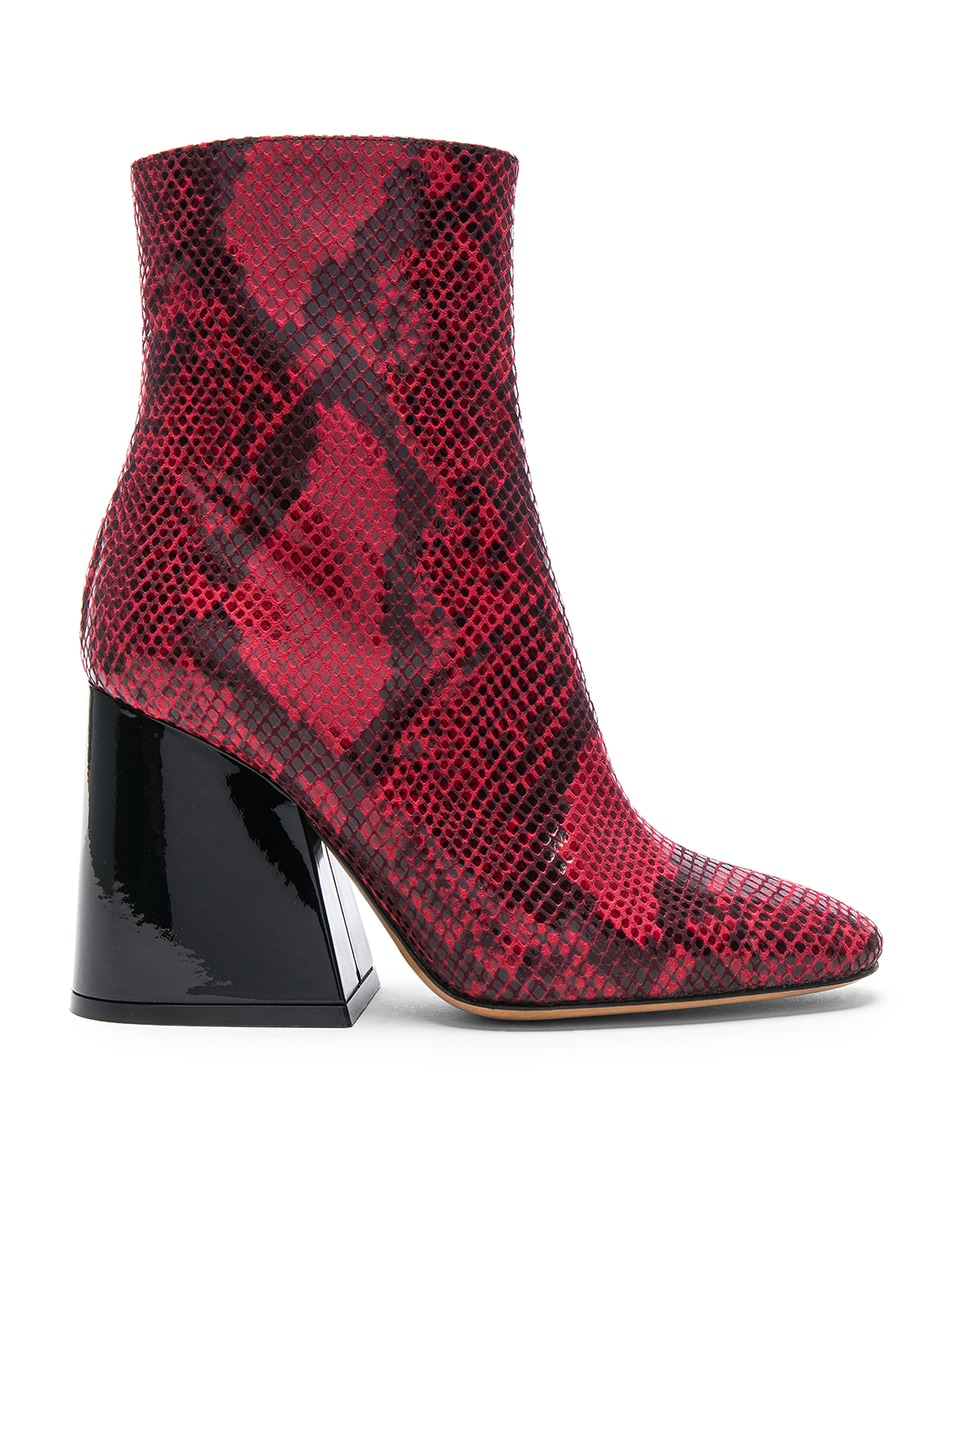 Image 1 of Maison Margiela Block Heel Boot in Python Red